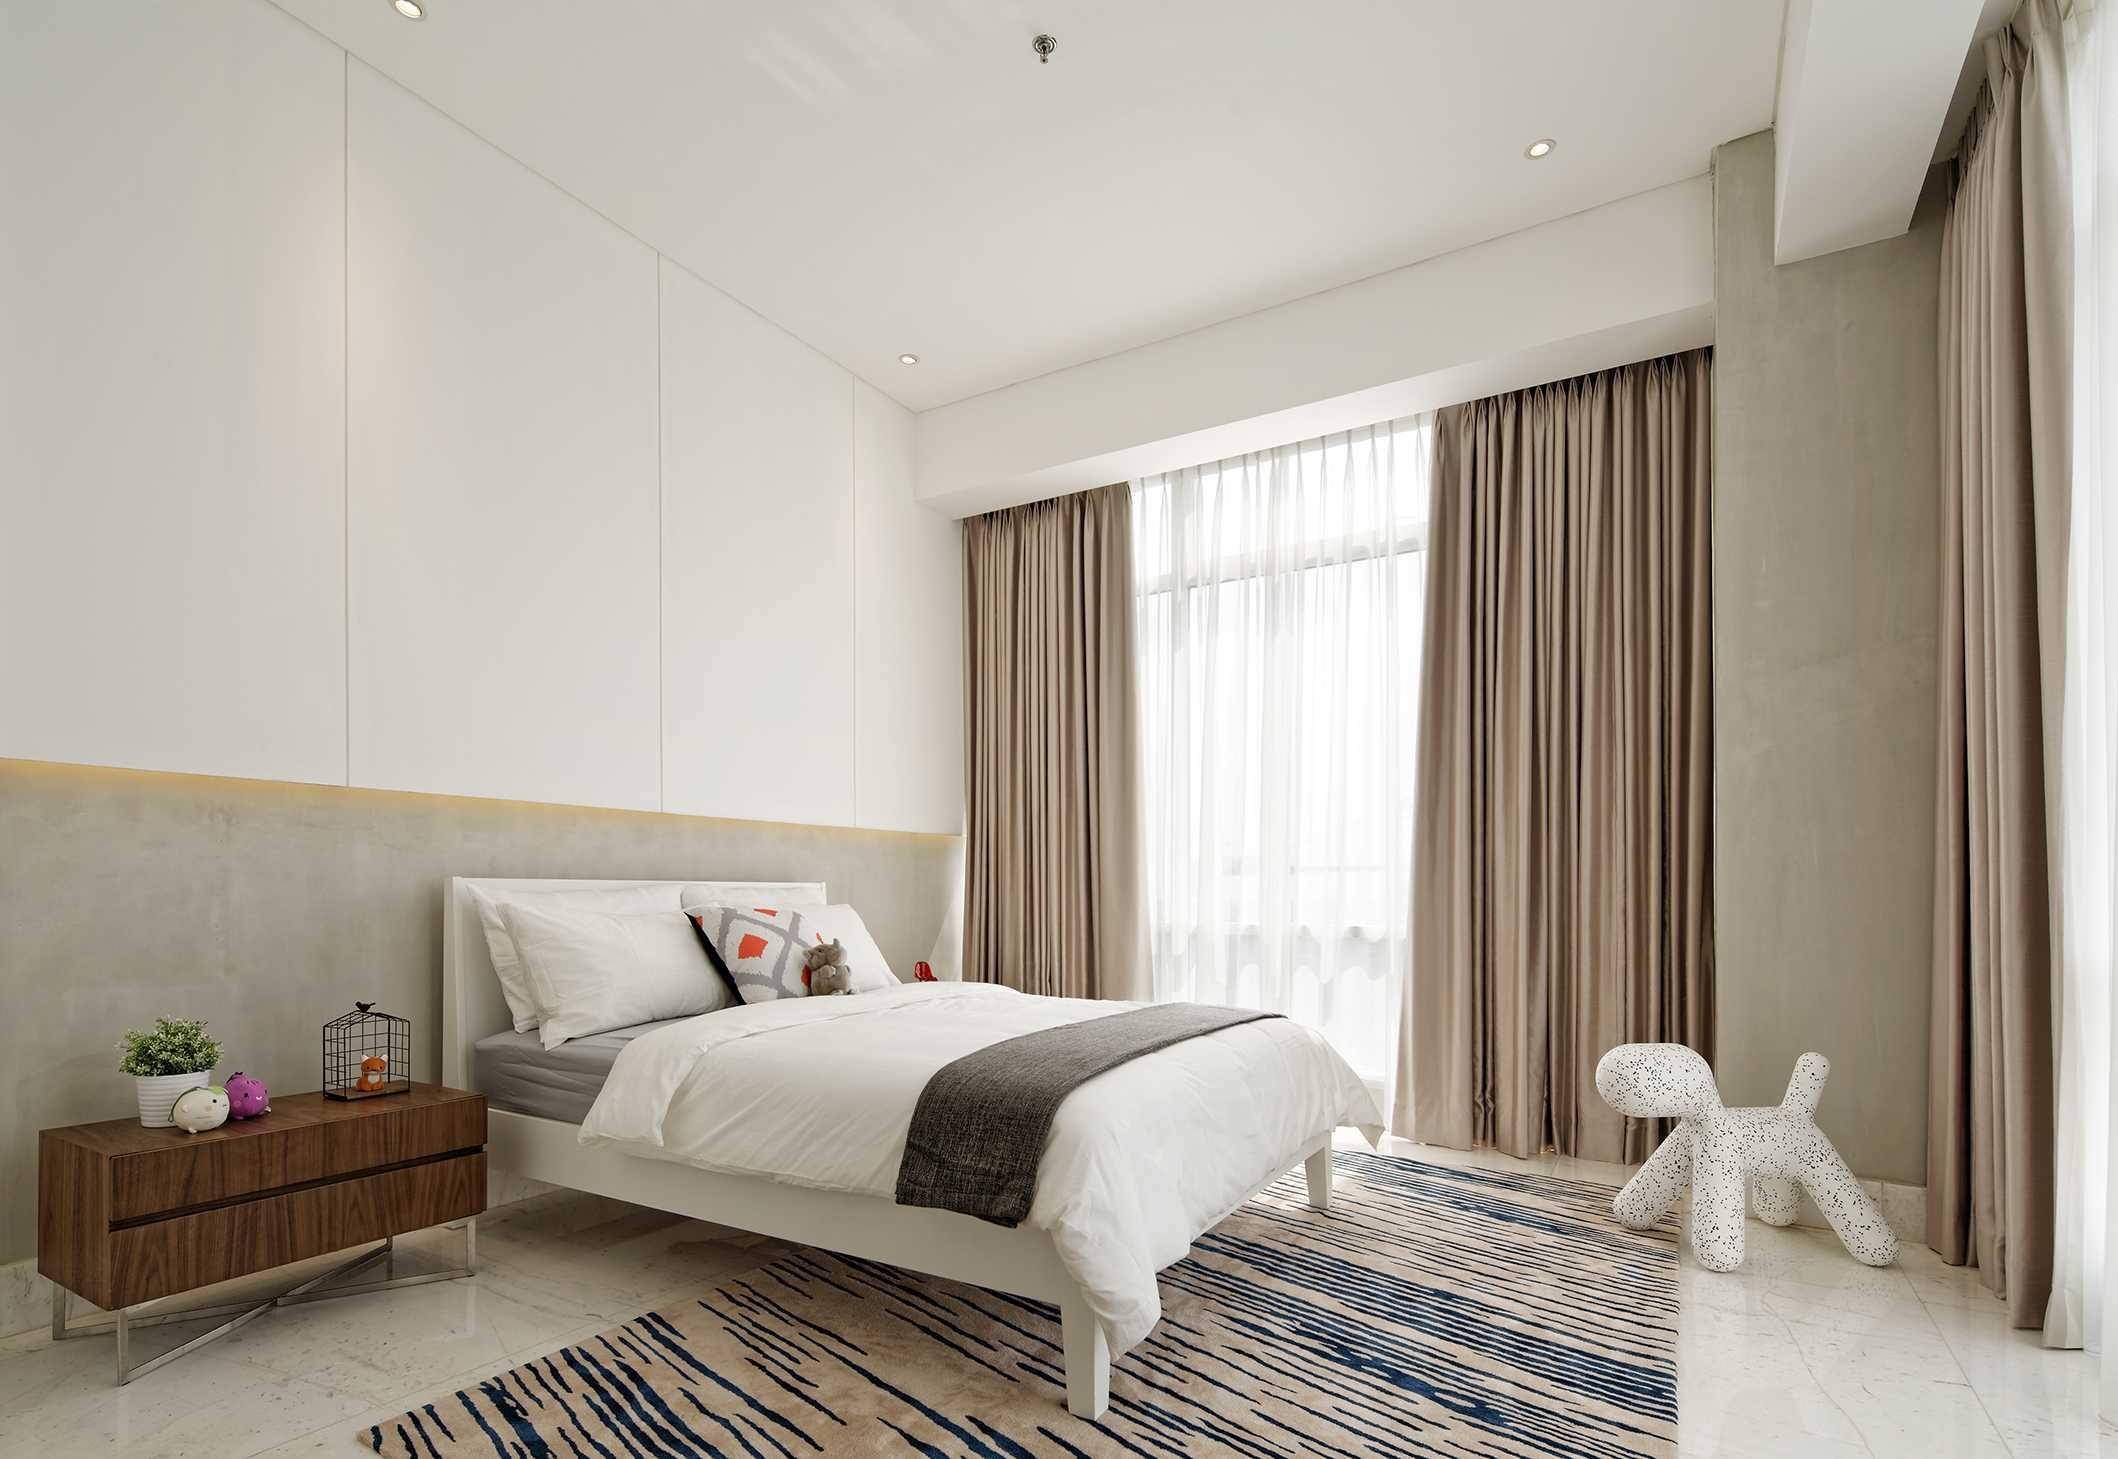 Sontani Partners 11A Residence South Jakarta, Indonesia South Jakarta, Indonesia Bedroom Kontemporer,industrial,wood,modern  21396